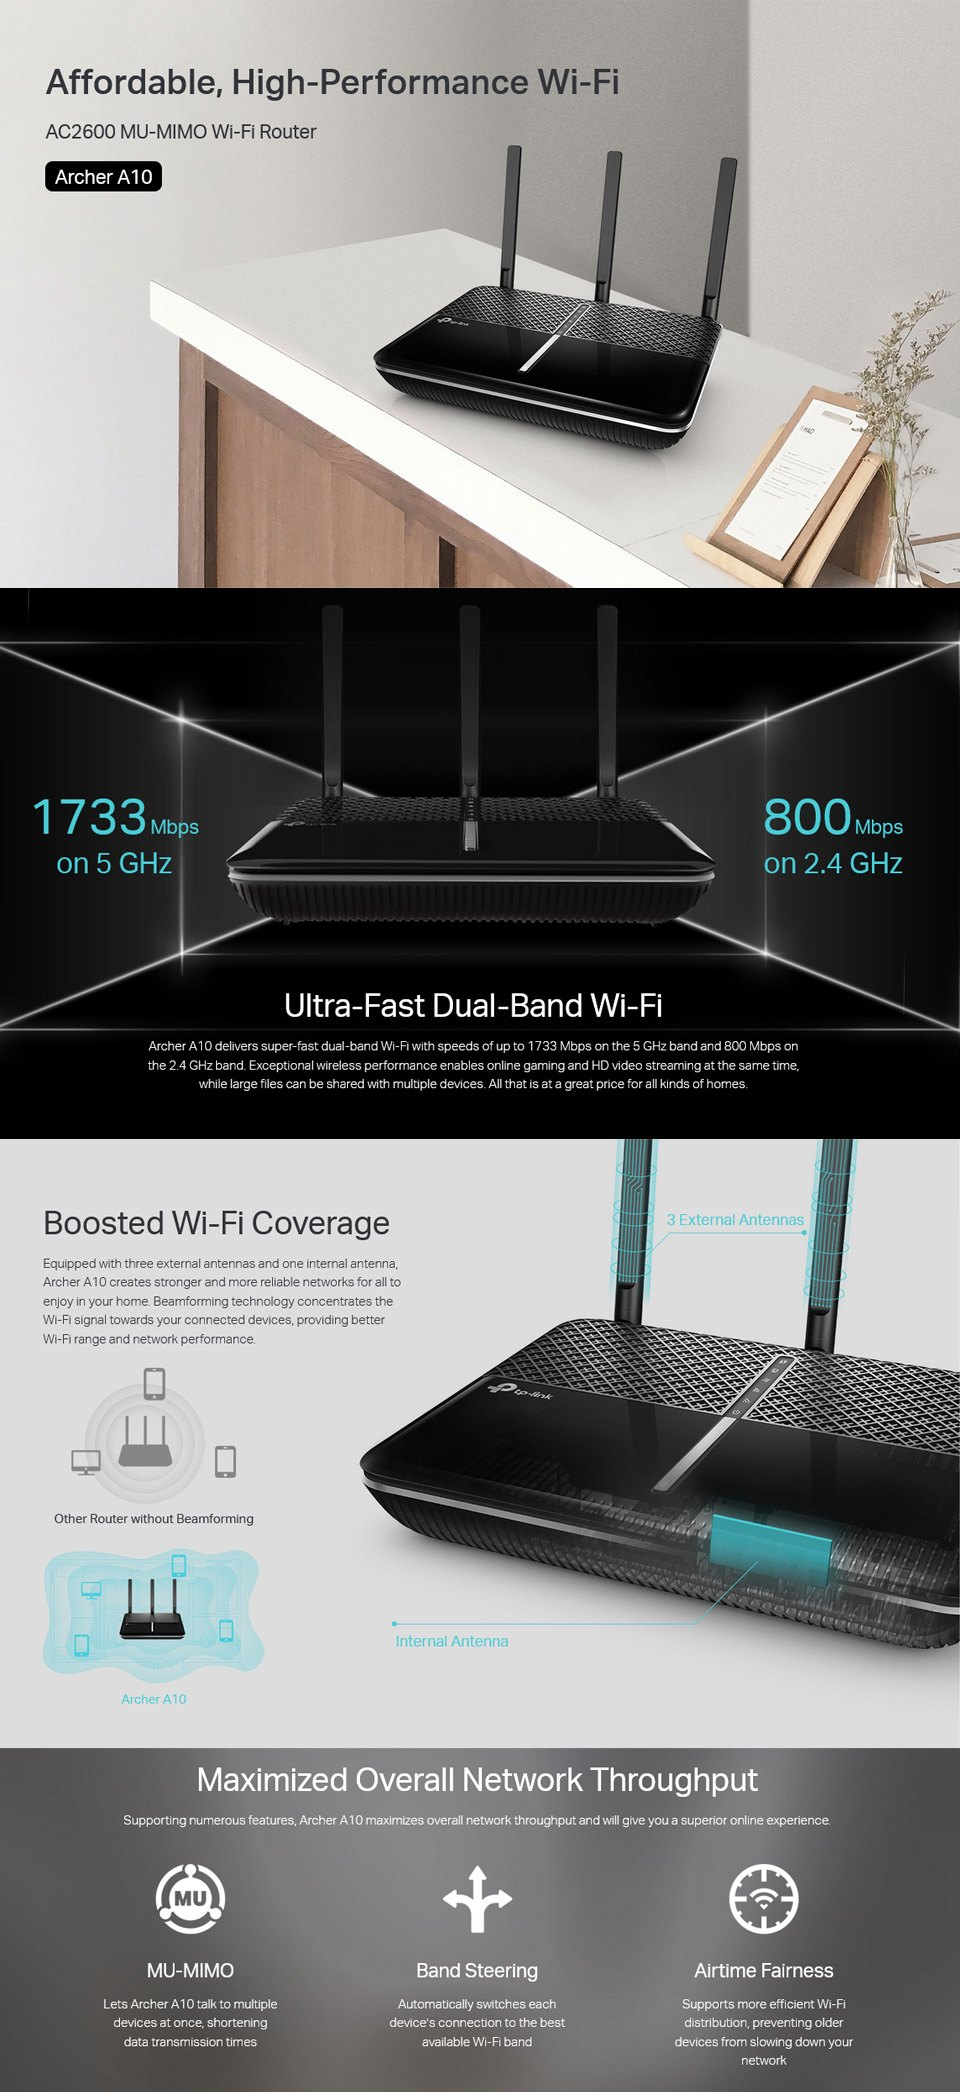 TP-Link Archer A10 AC2600 Wireless Router features